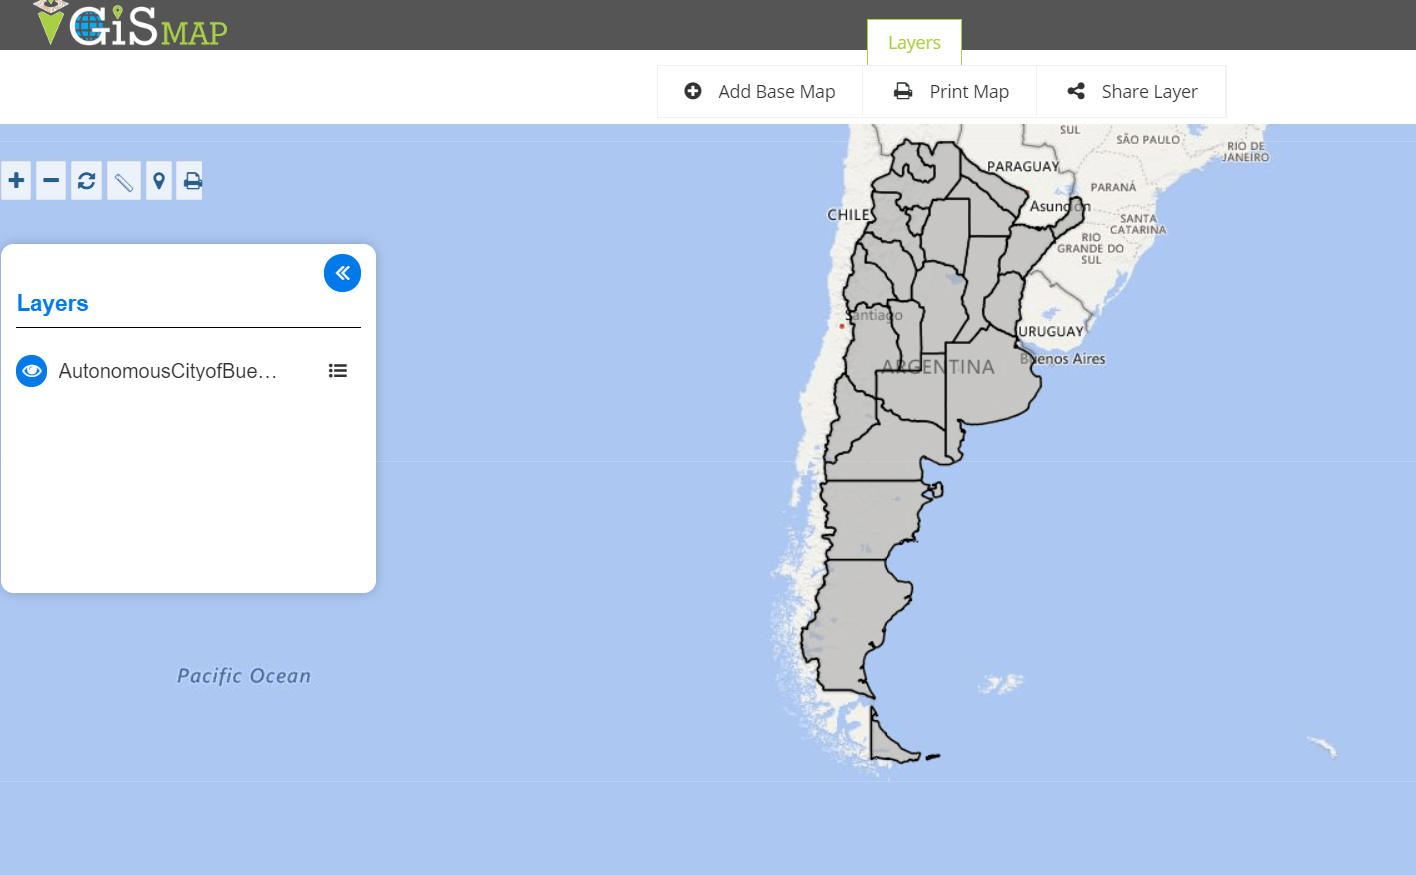 Different ways to convert Shapefile to GeoJSON - Online or